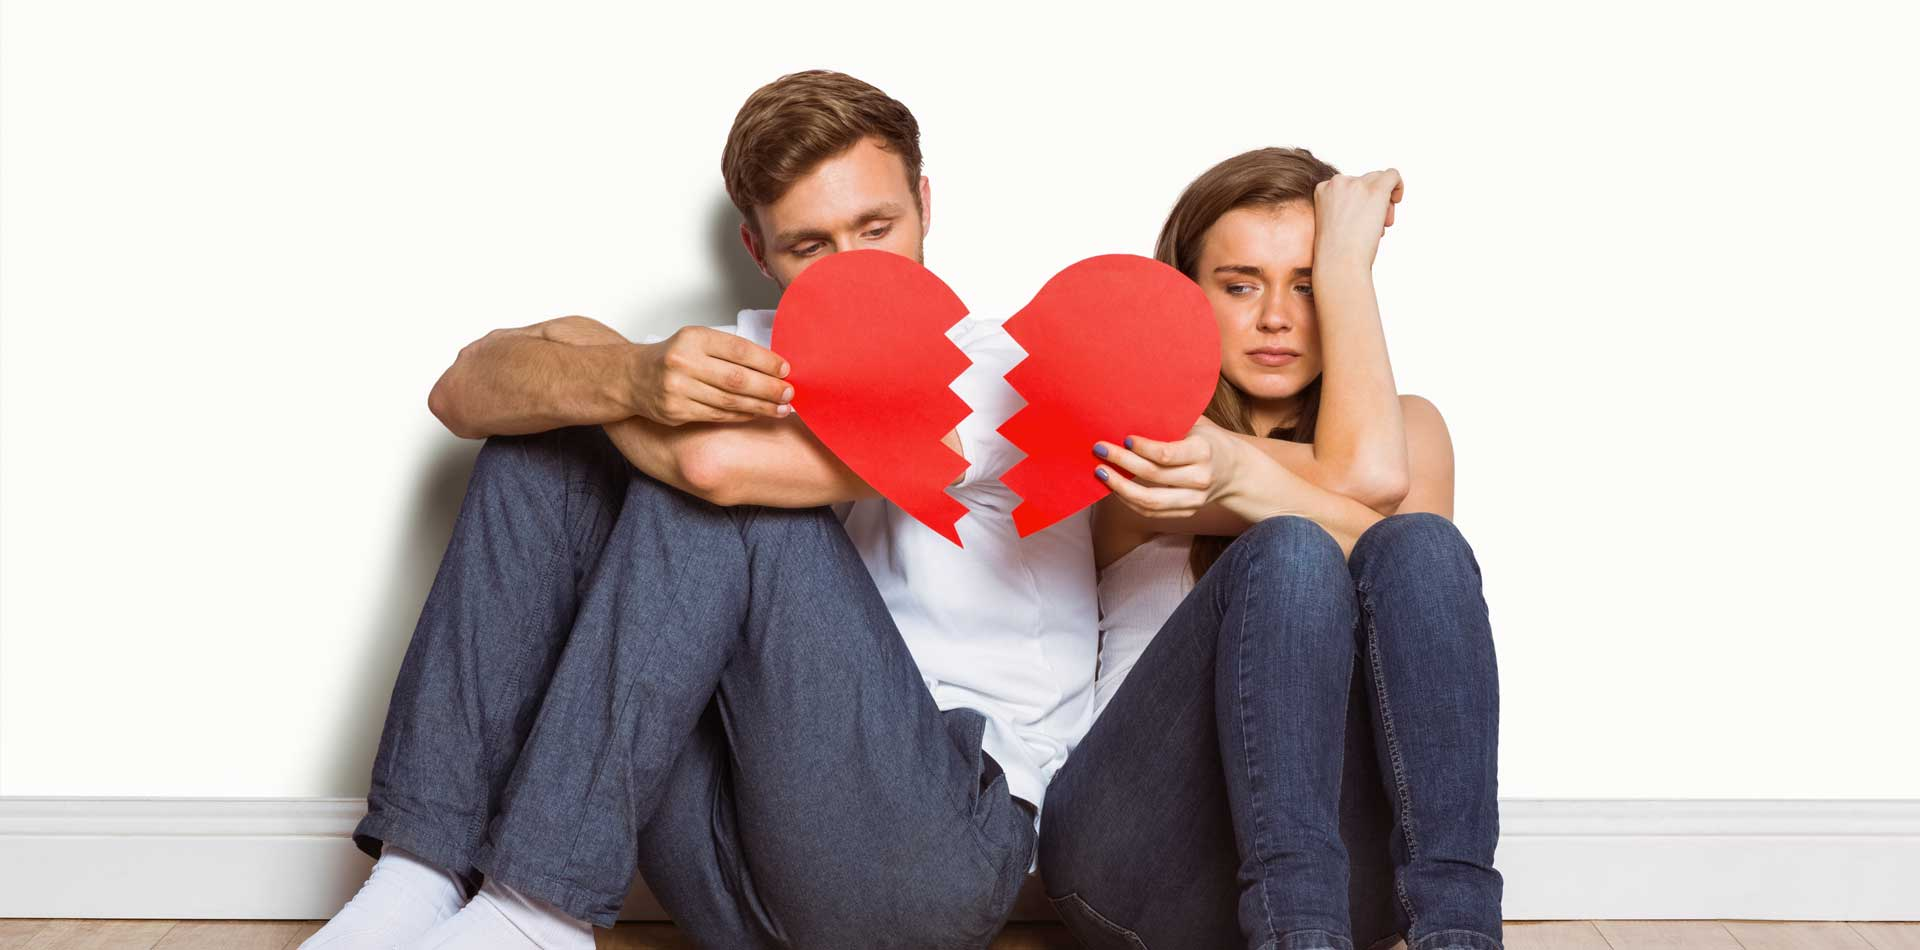 How to break free from a bad relationship